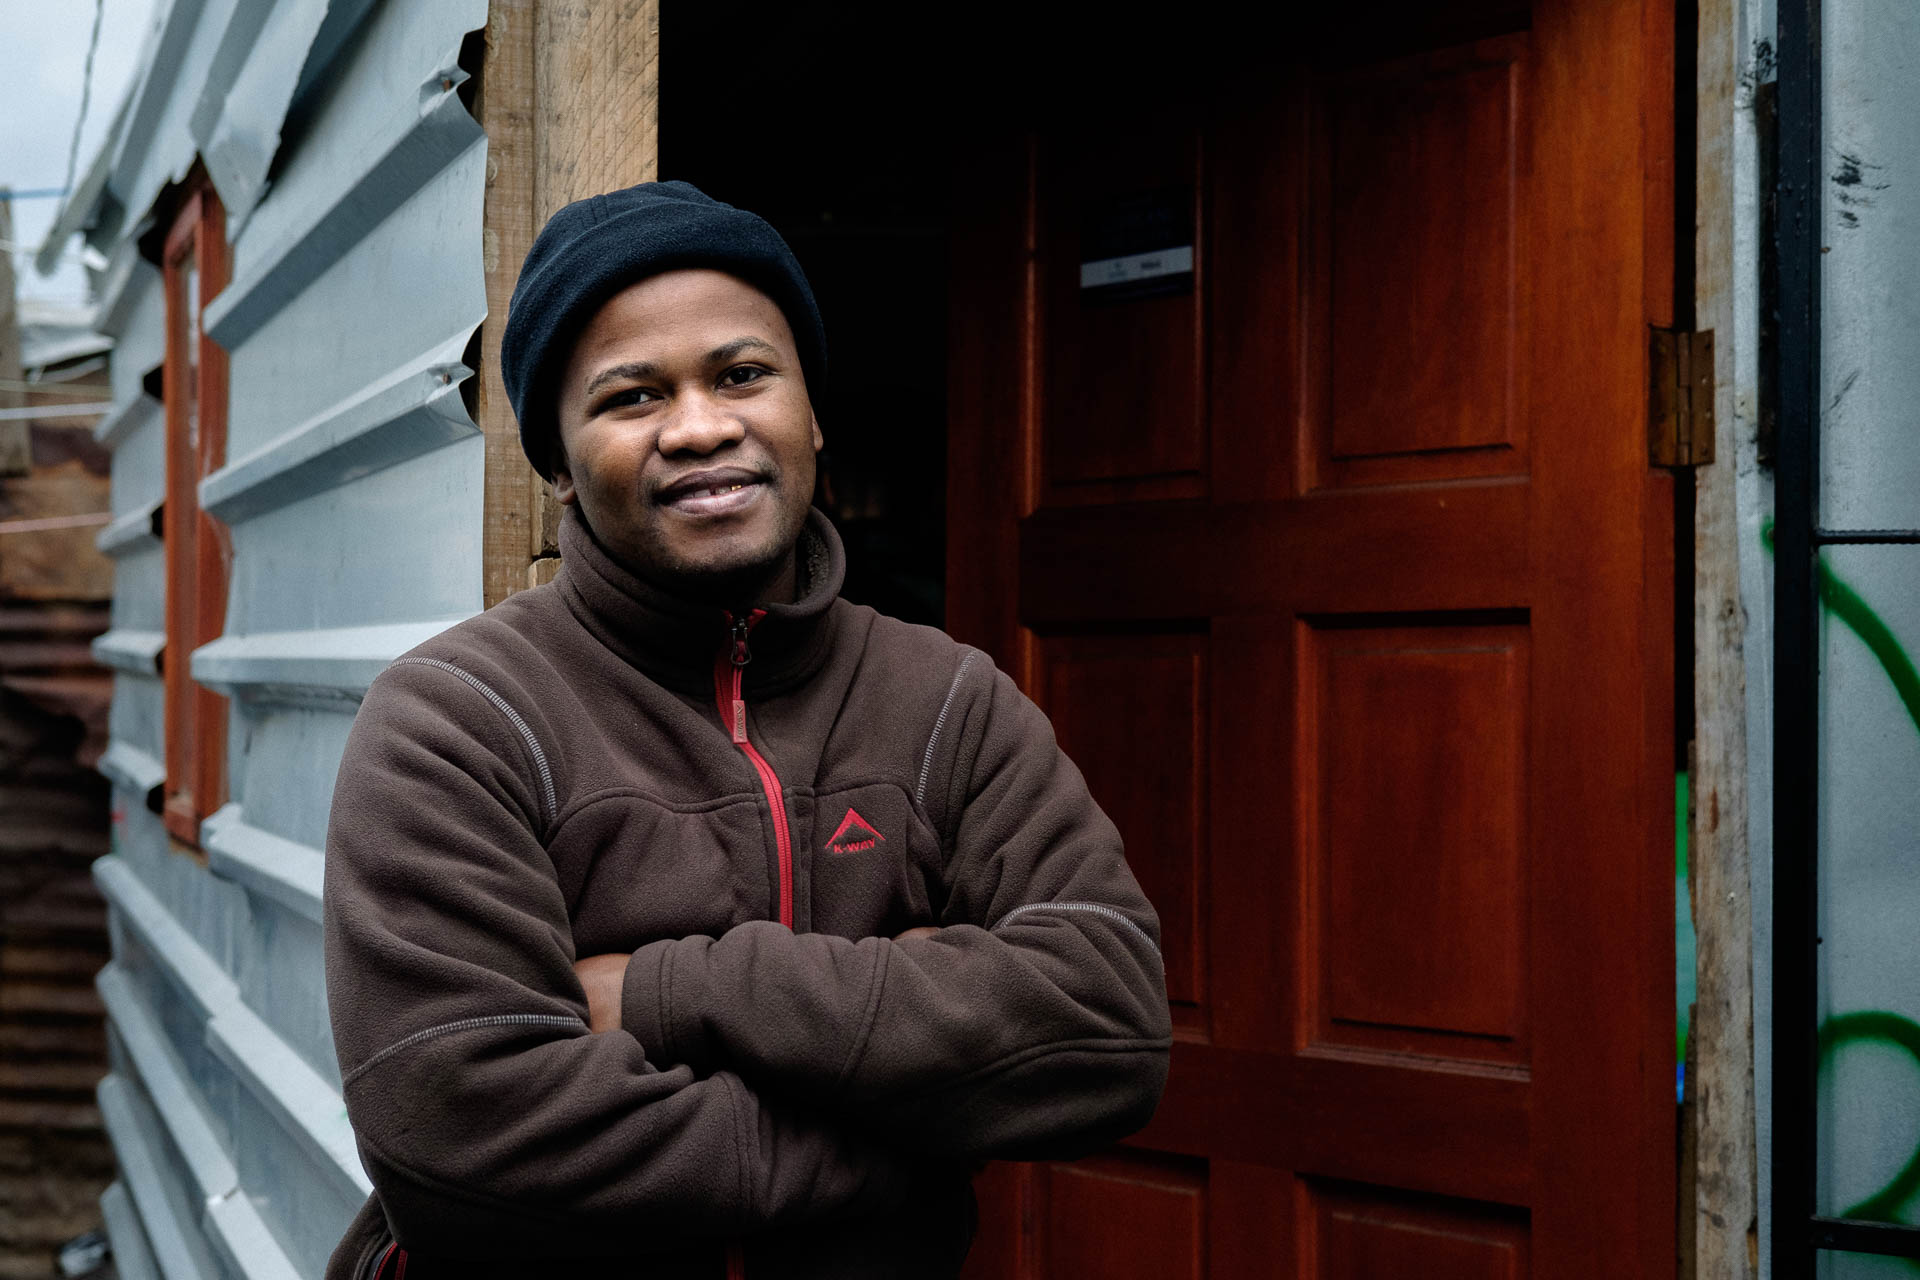 Siphumelele, a client of Lumkani, has fire protection and insurance even though he lives in an informal settlement.